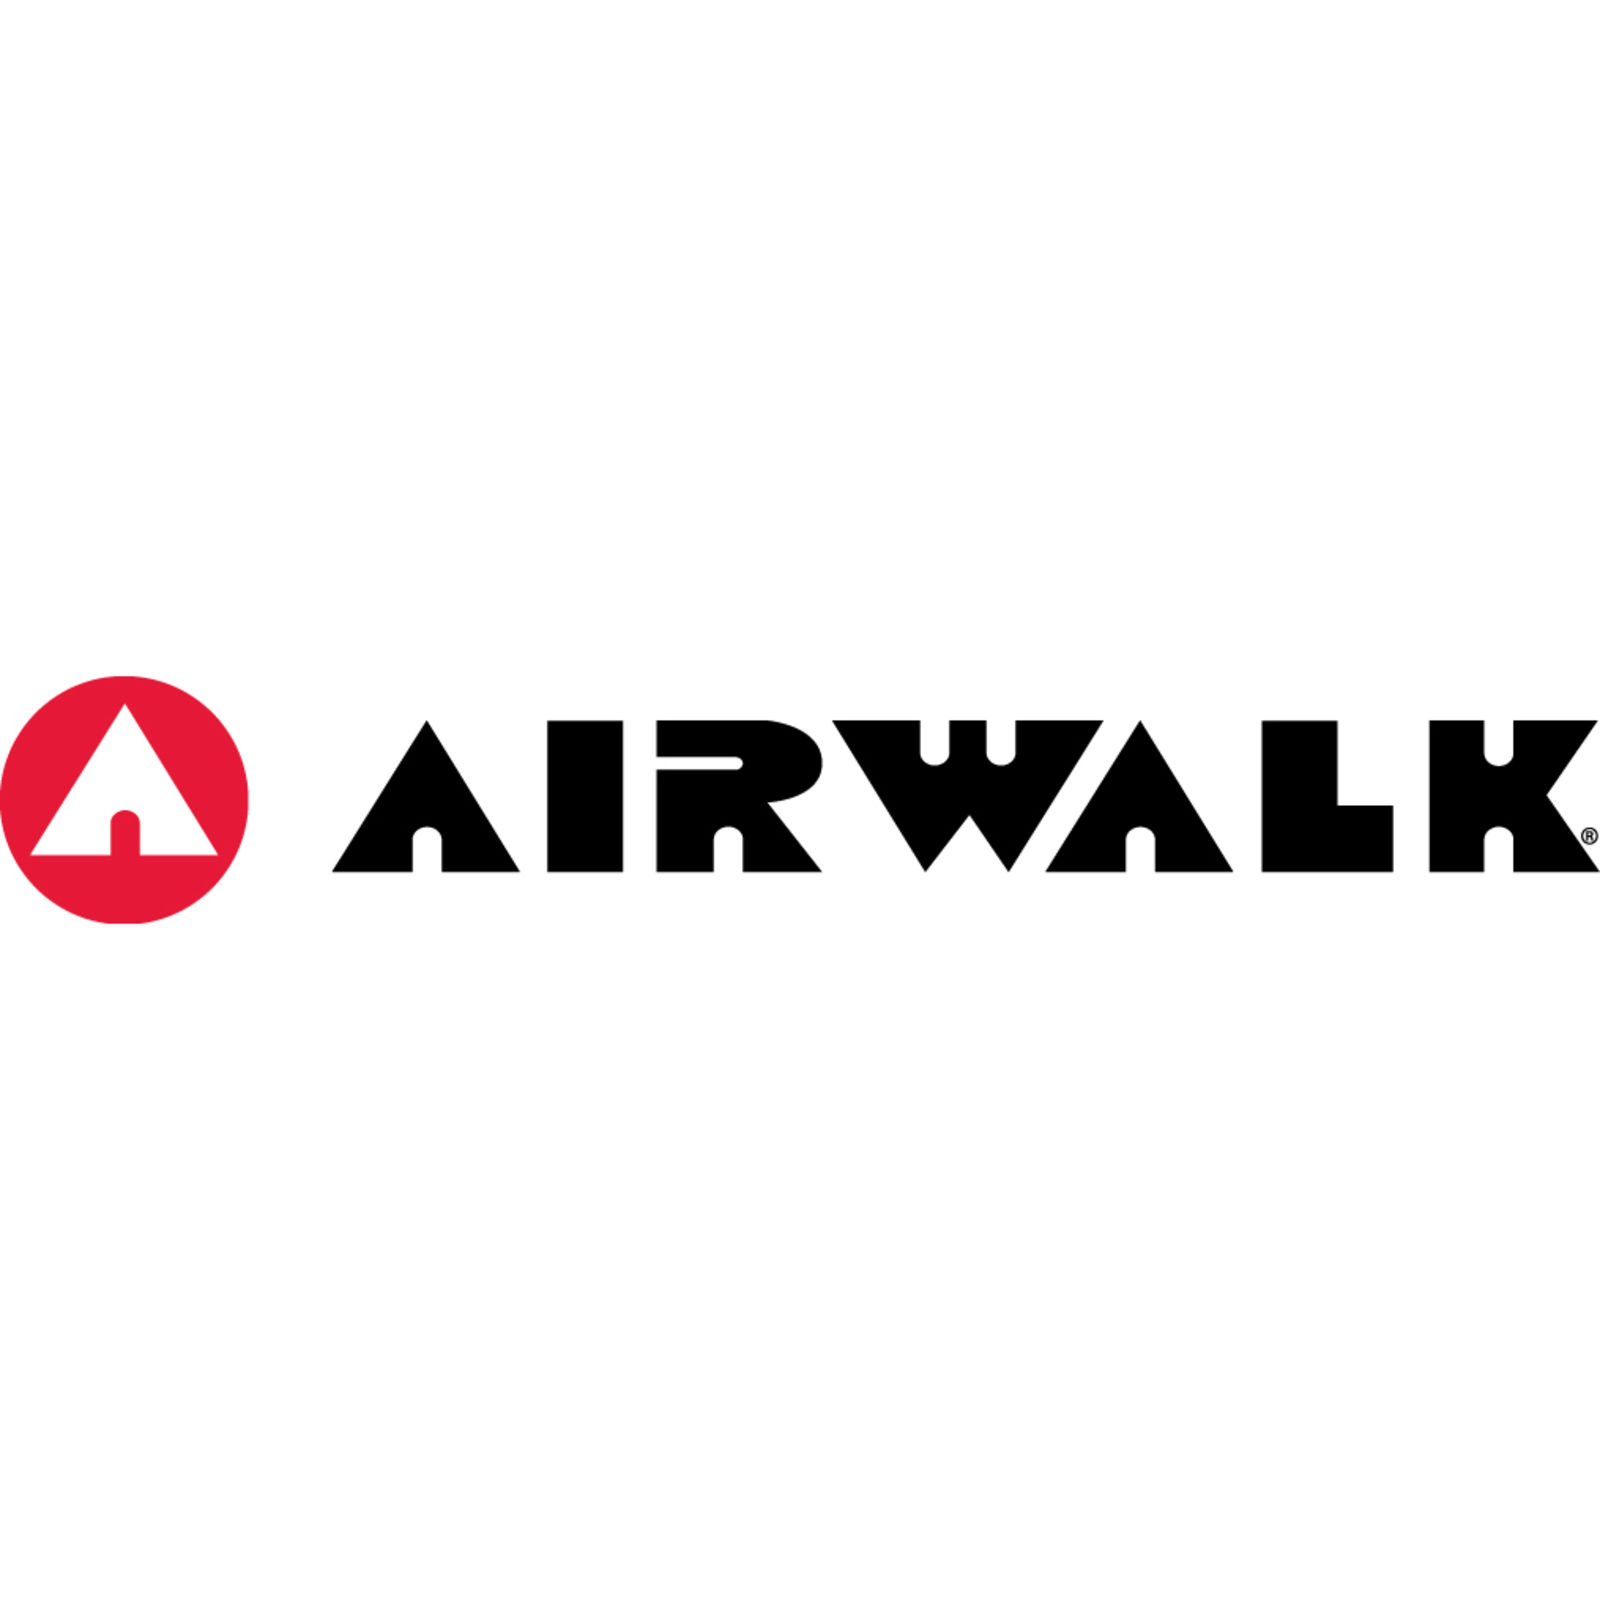 AIRWALK